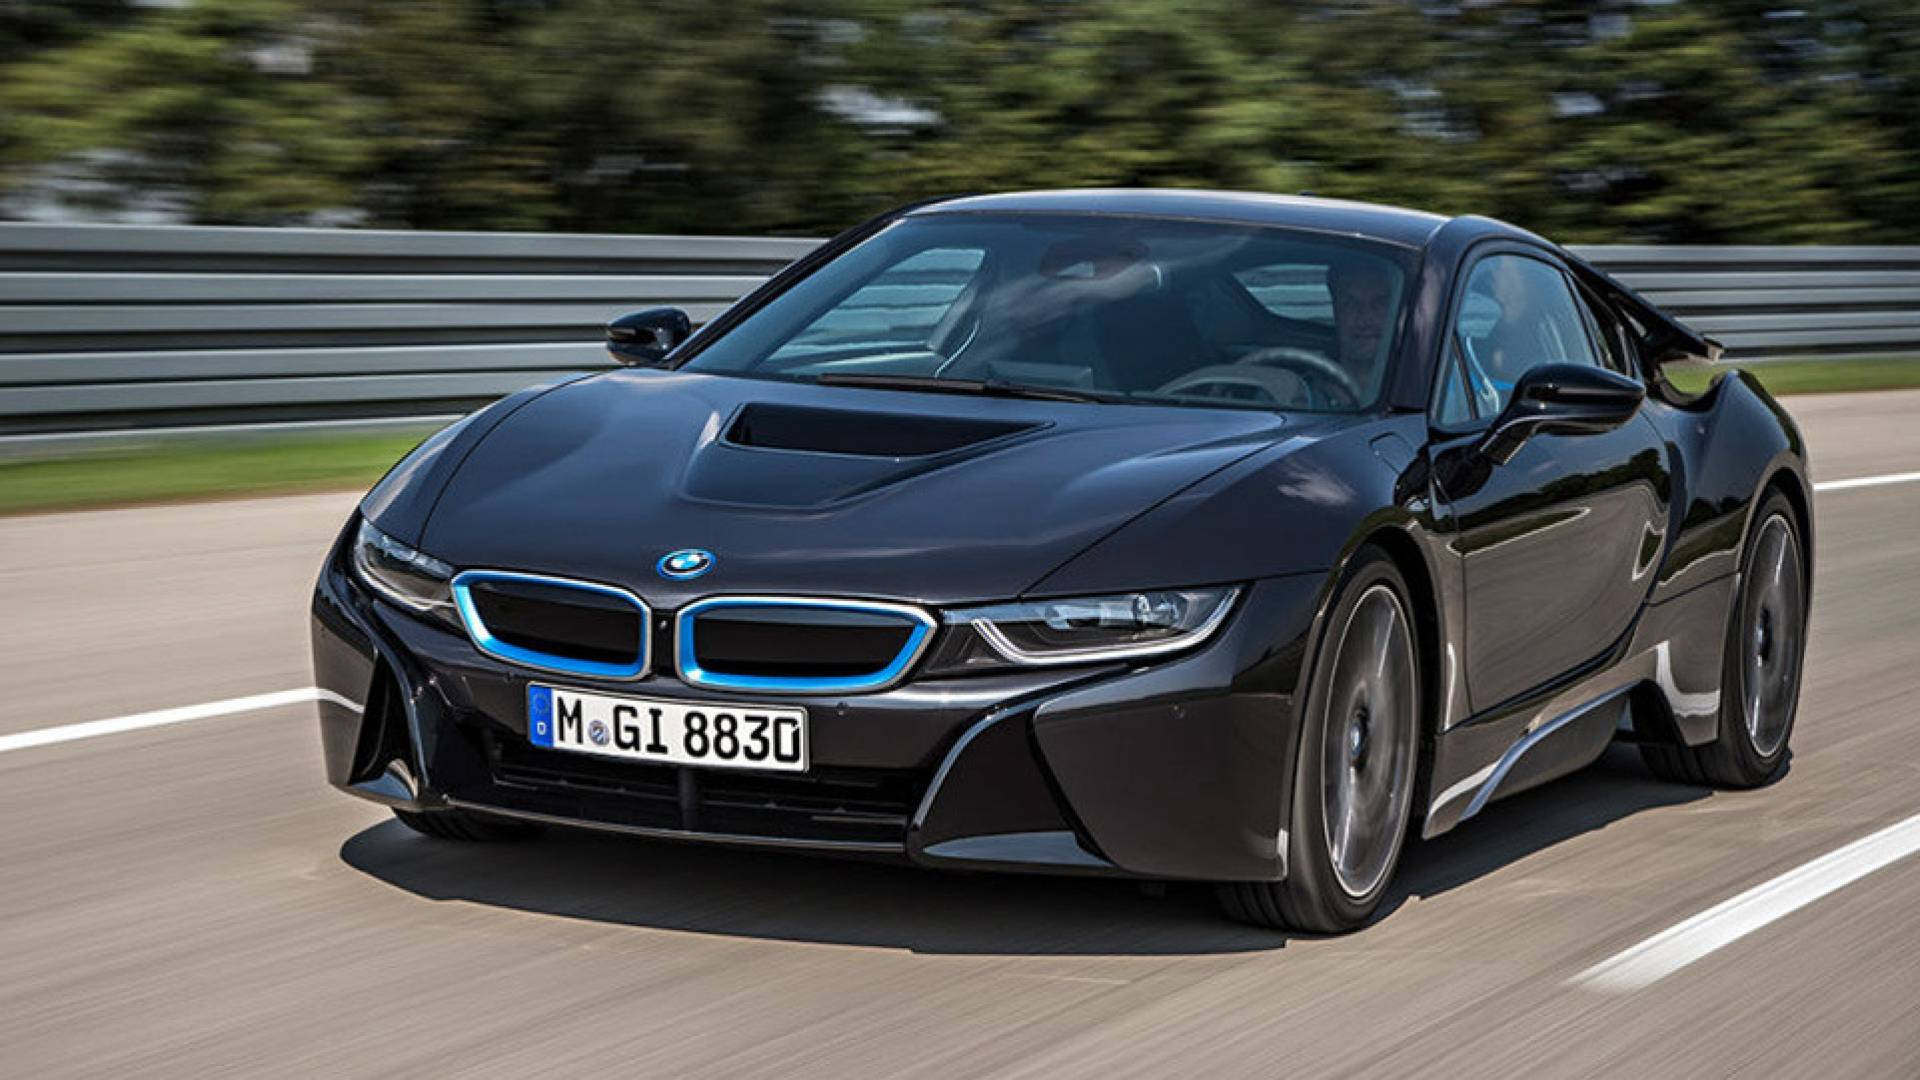 bmw's masterplan to electric car transition - the green optimistic